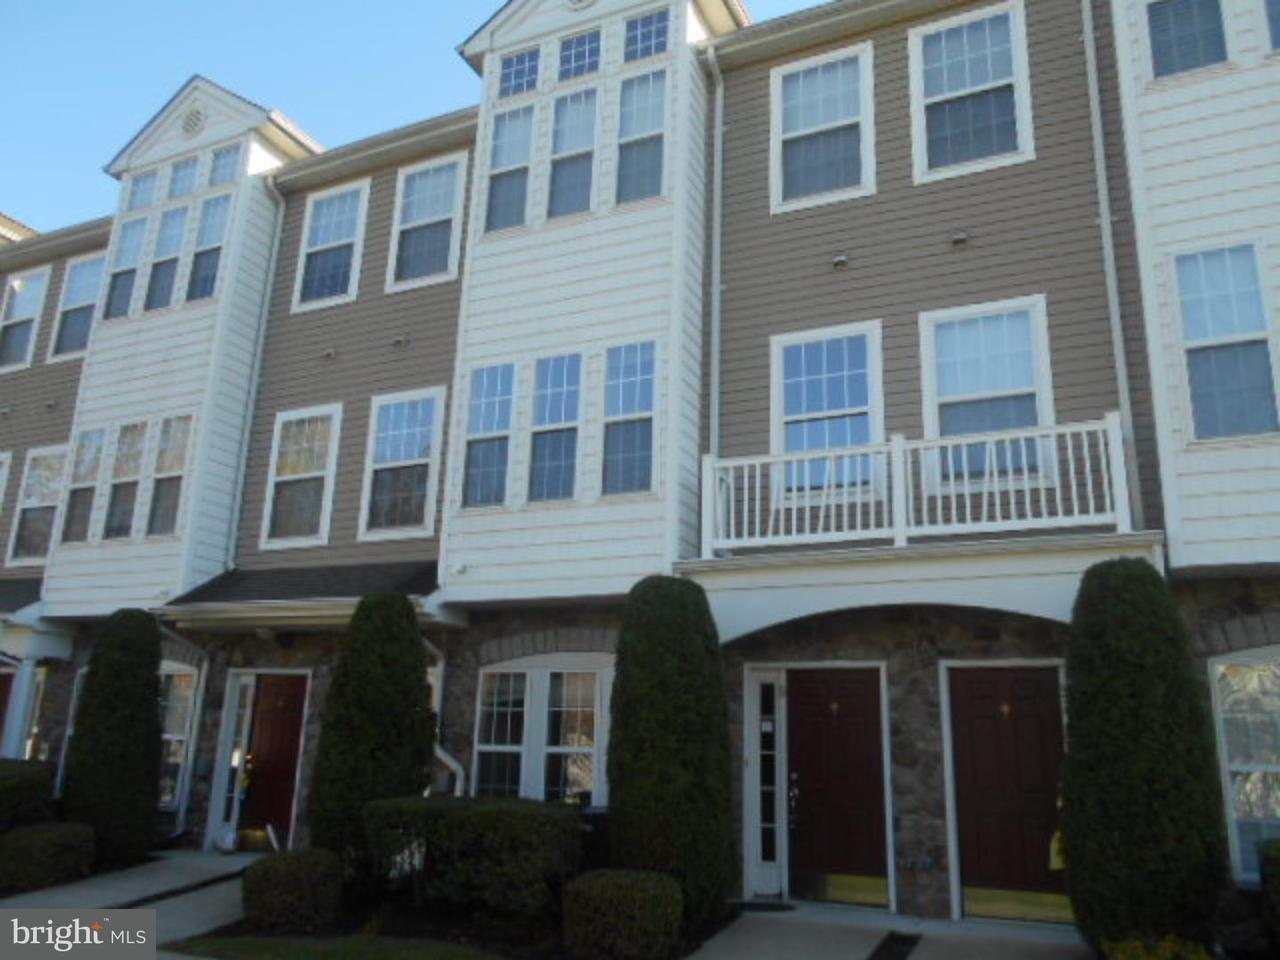 Townhouse for Sale at 9 HERON Court Delanco Township, New Jersey 08075 United States